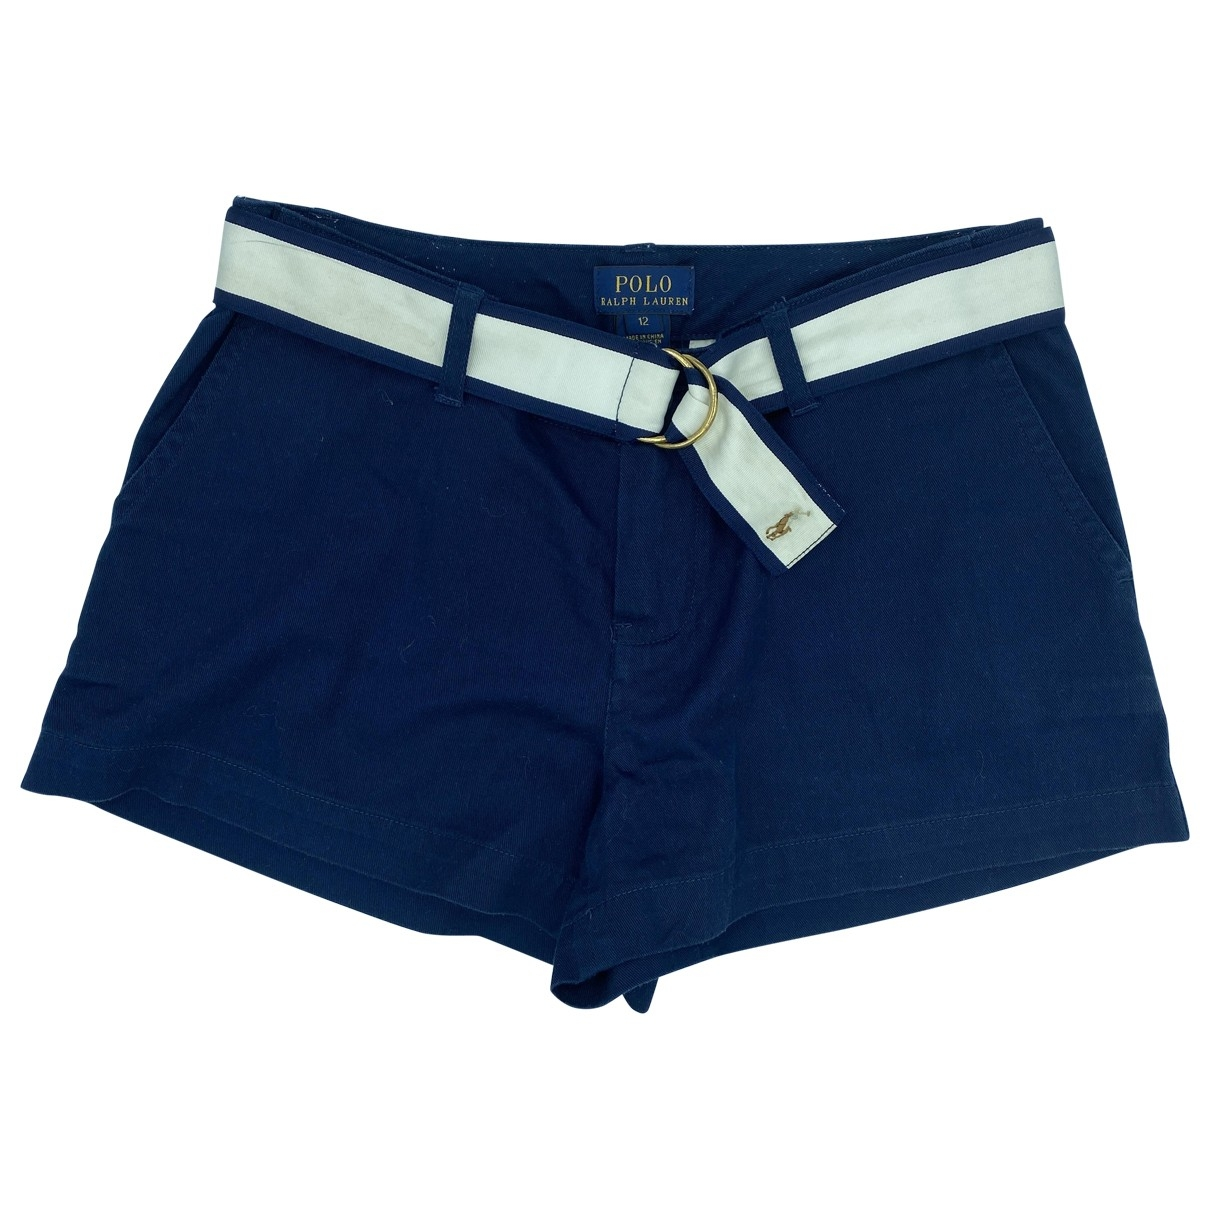 Polo Ralph Lauren \N Blue Cotton Shorts for Kids 14 years - S FR